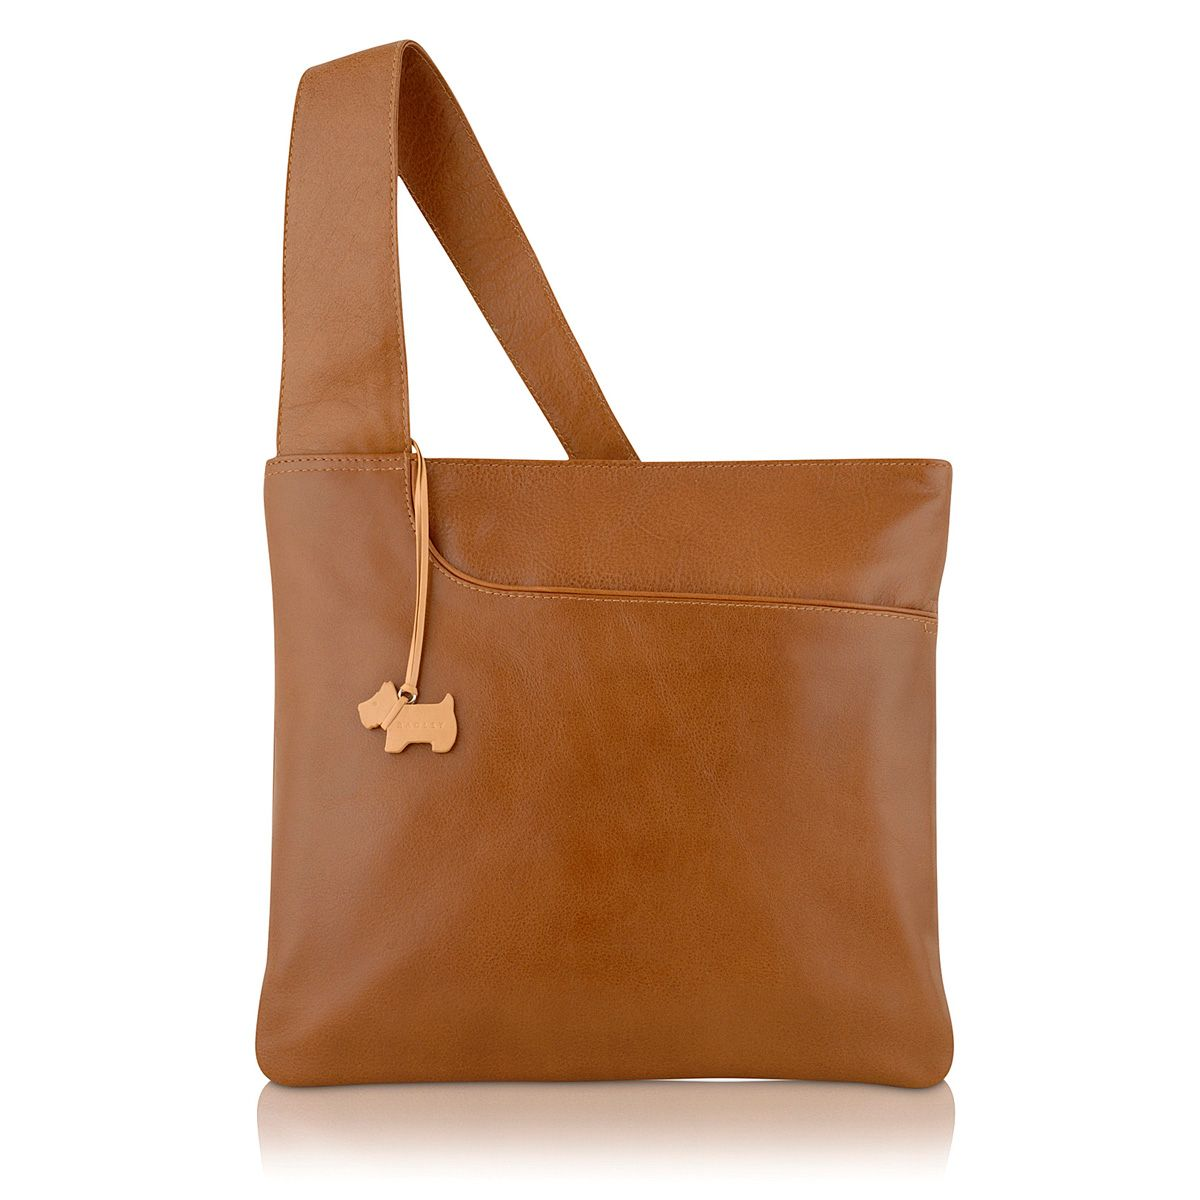 Tan large pocket bag